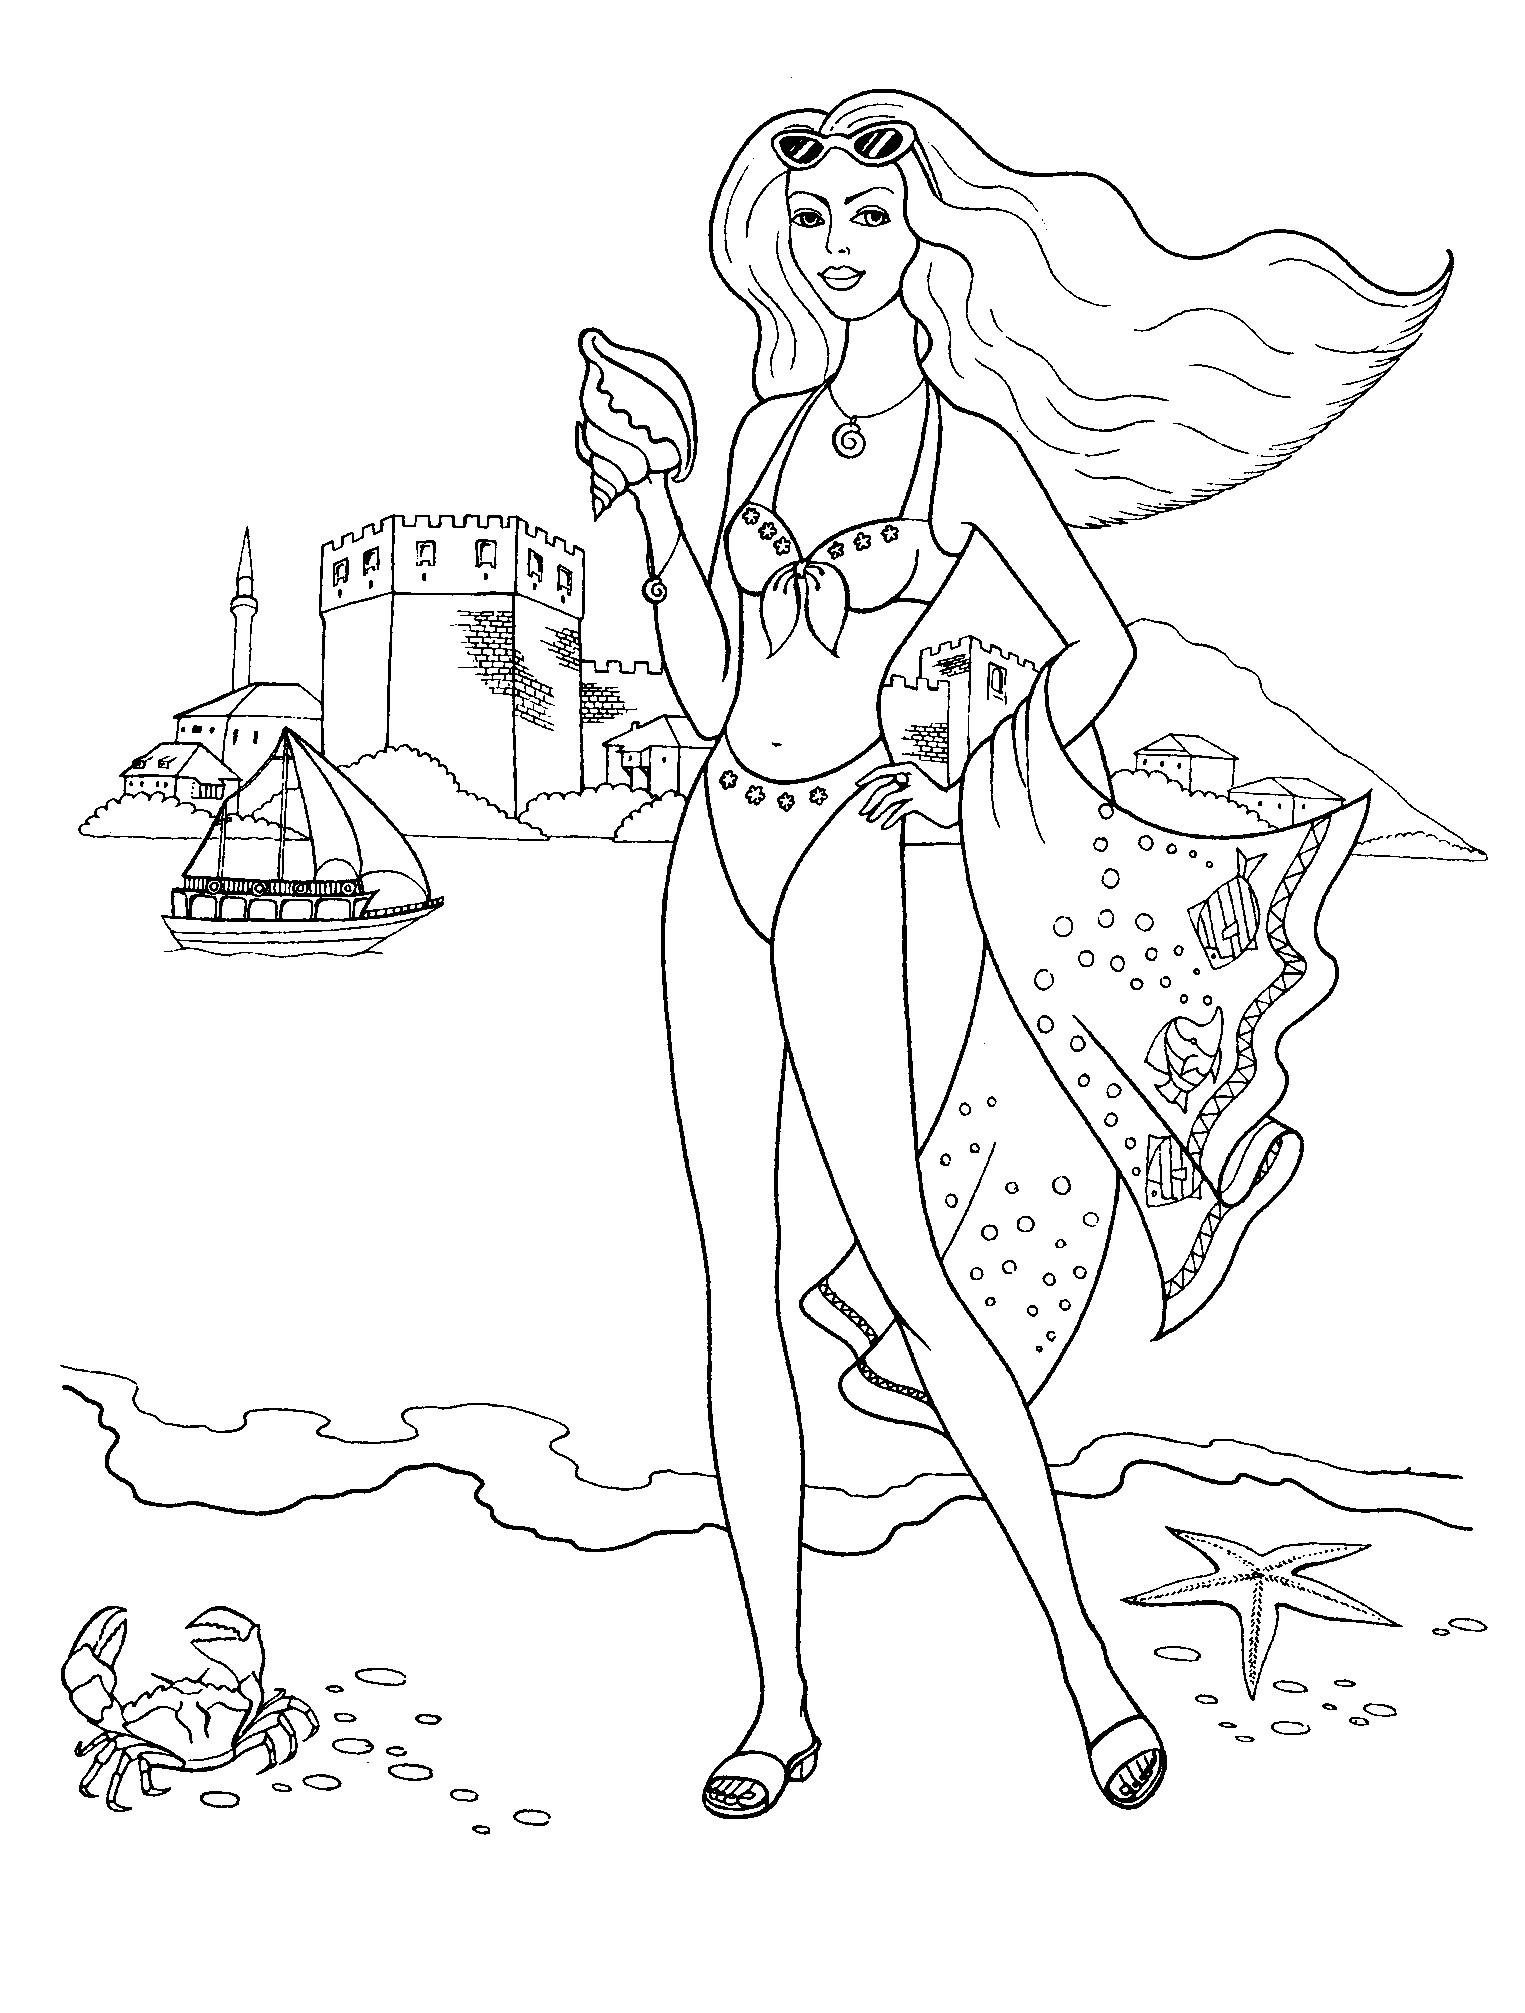 Best ideas about Fashion Coloring Pages For Girls . Save or Pin Fashion Coloring Pages for Girls Printable Collection Now.